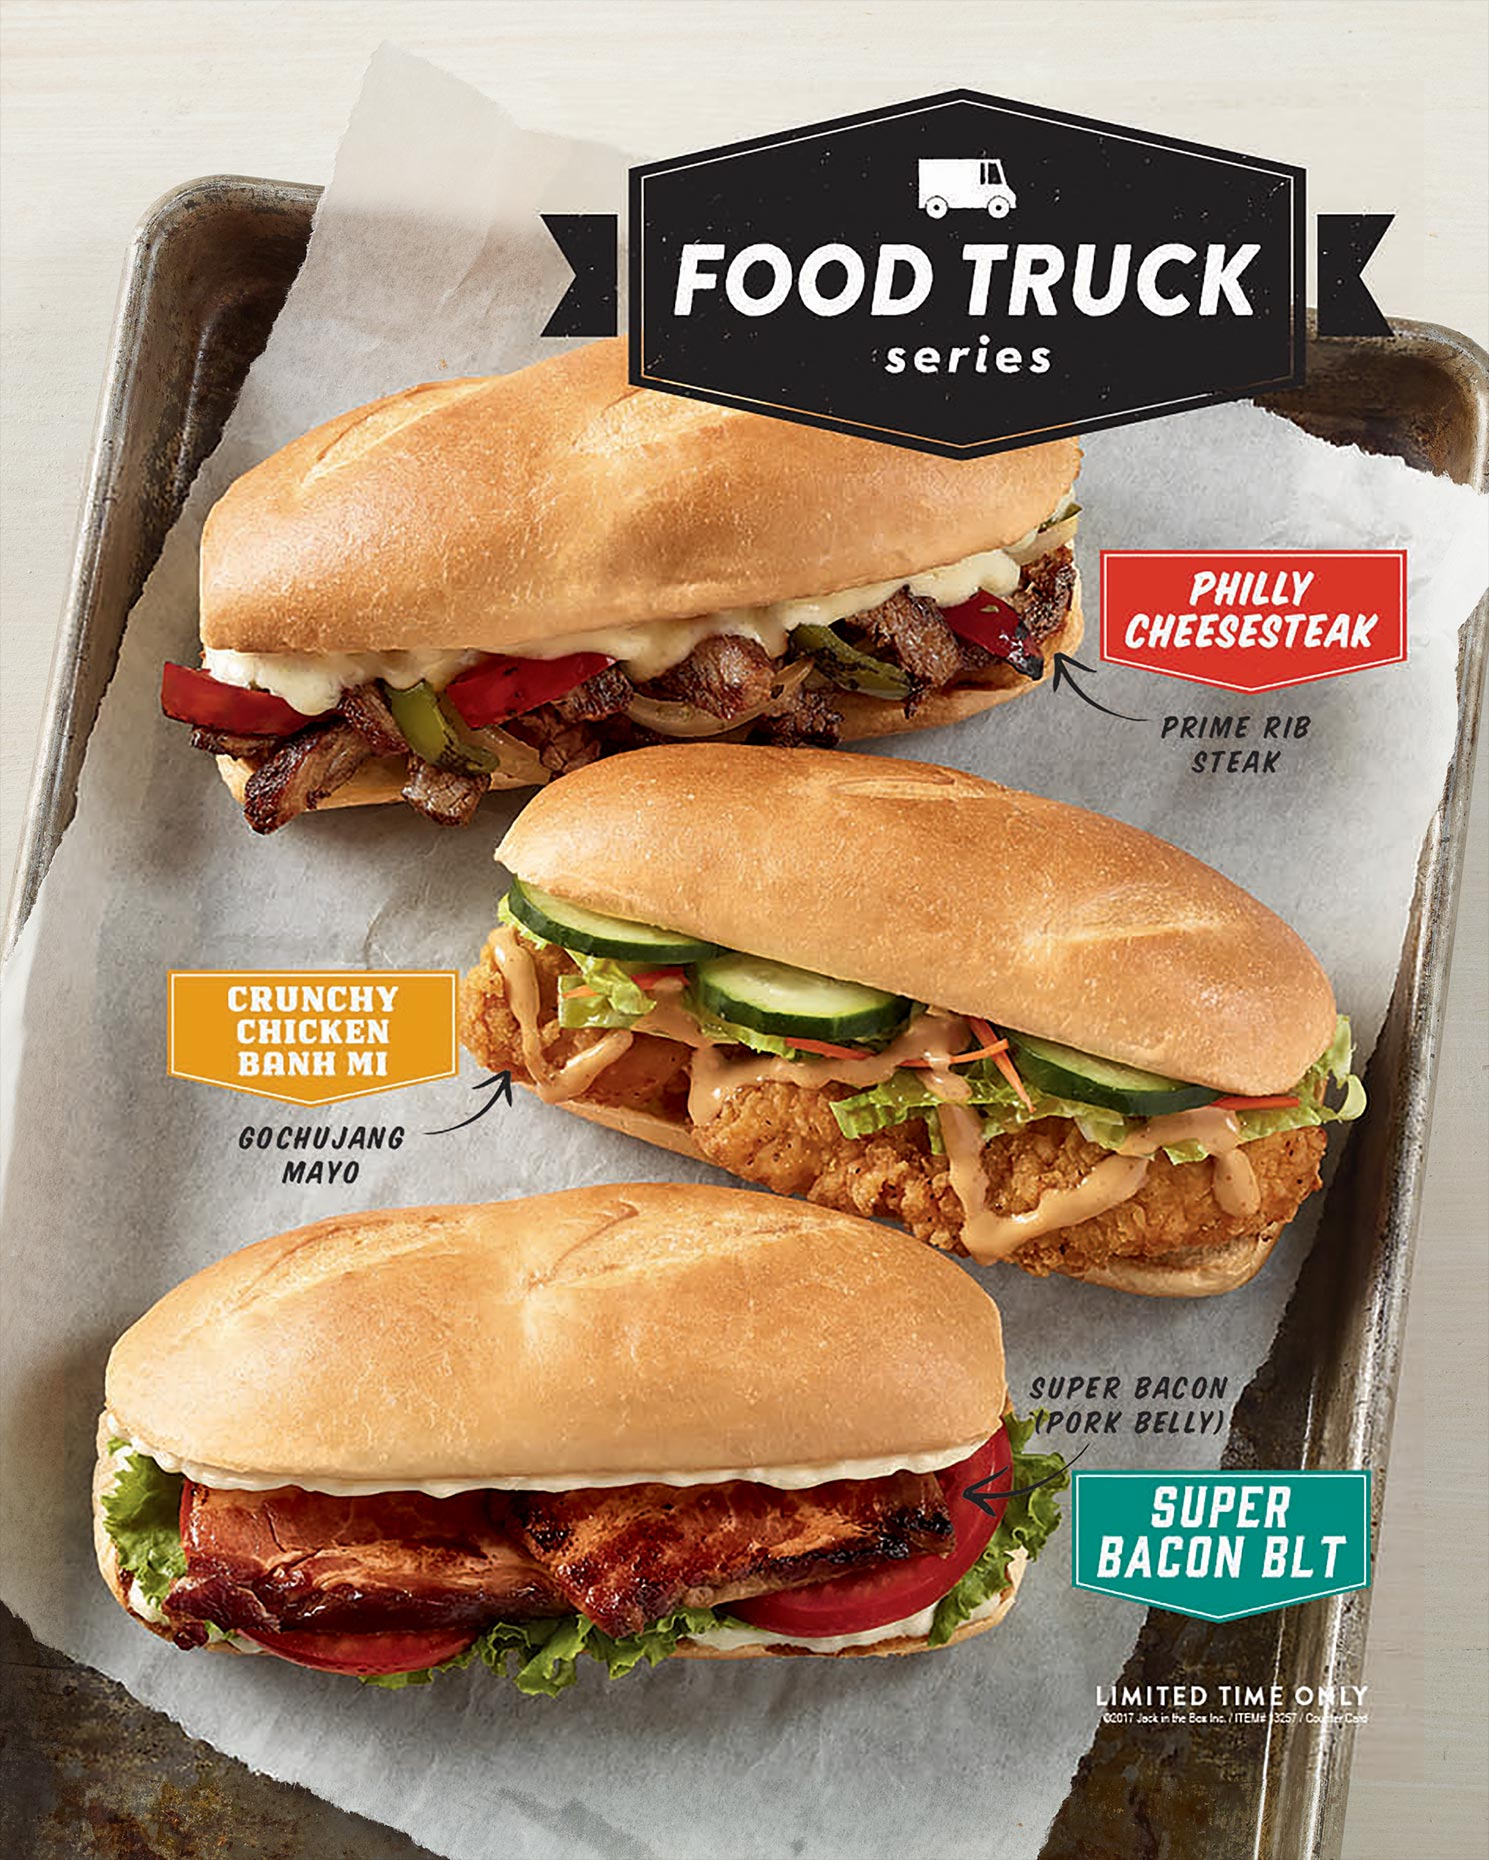 Food_Truck_Series_Family_Composed_Helicon.jpg